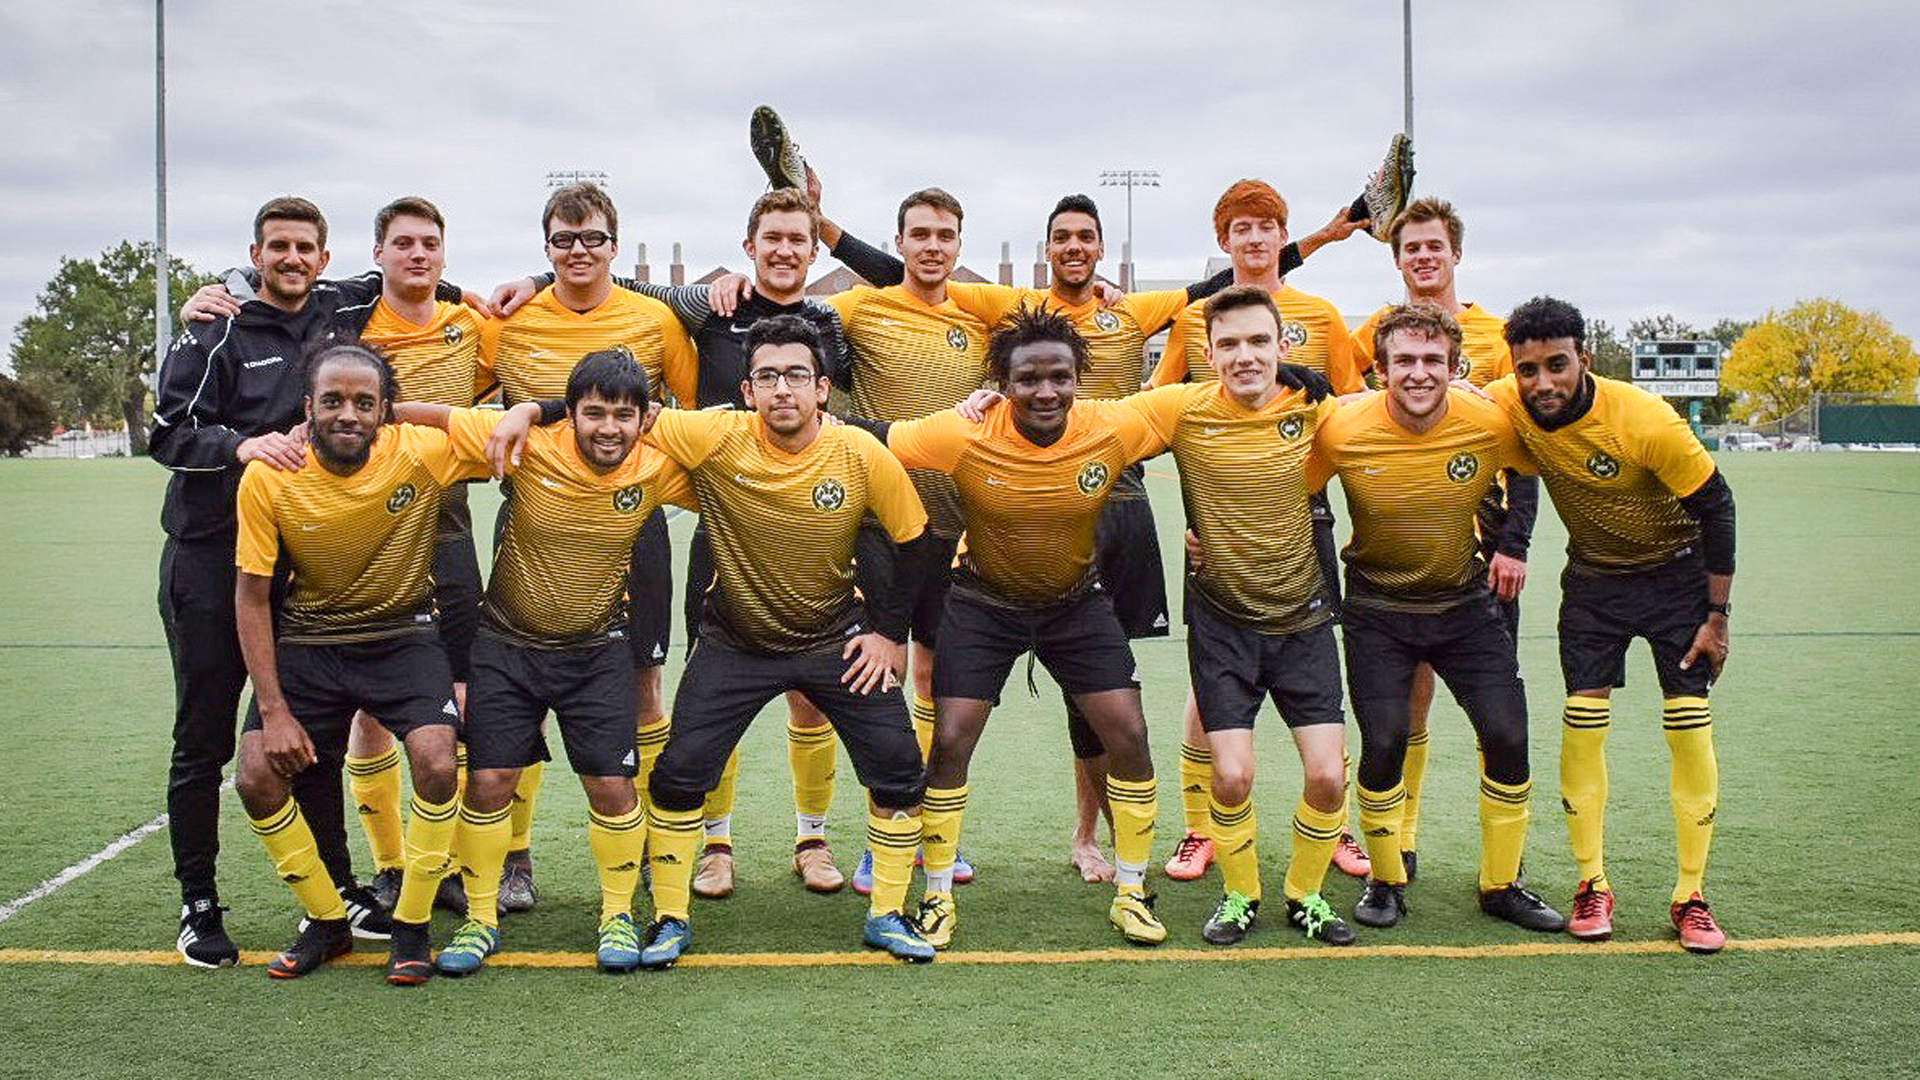 Men's Soccer Club 2018